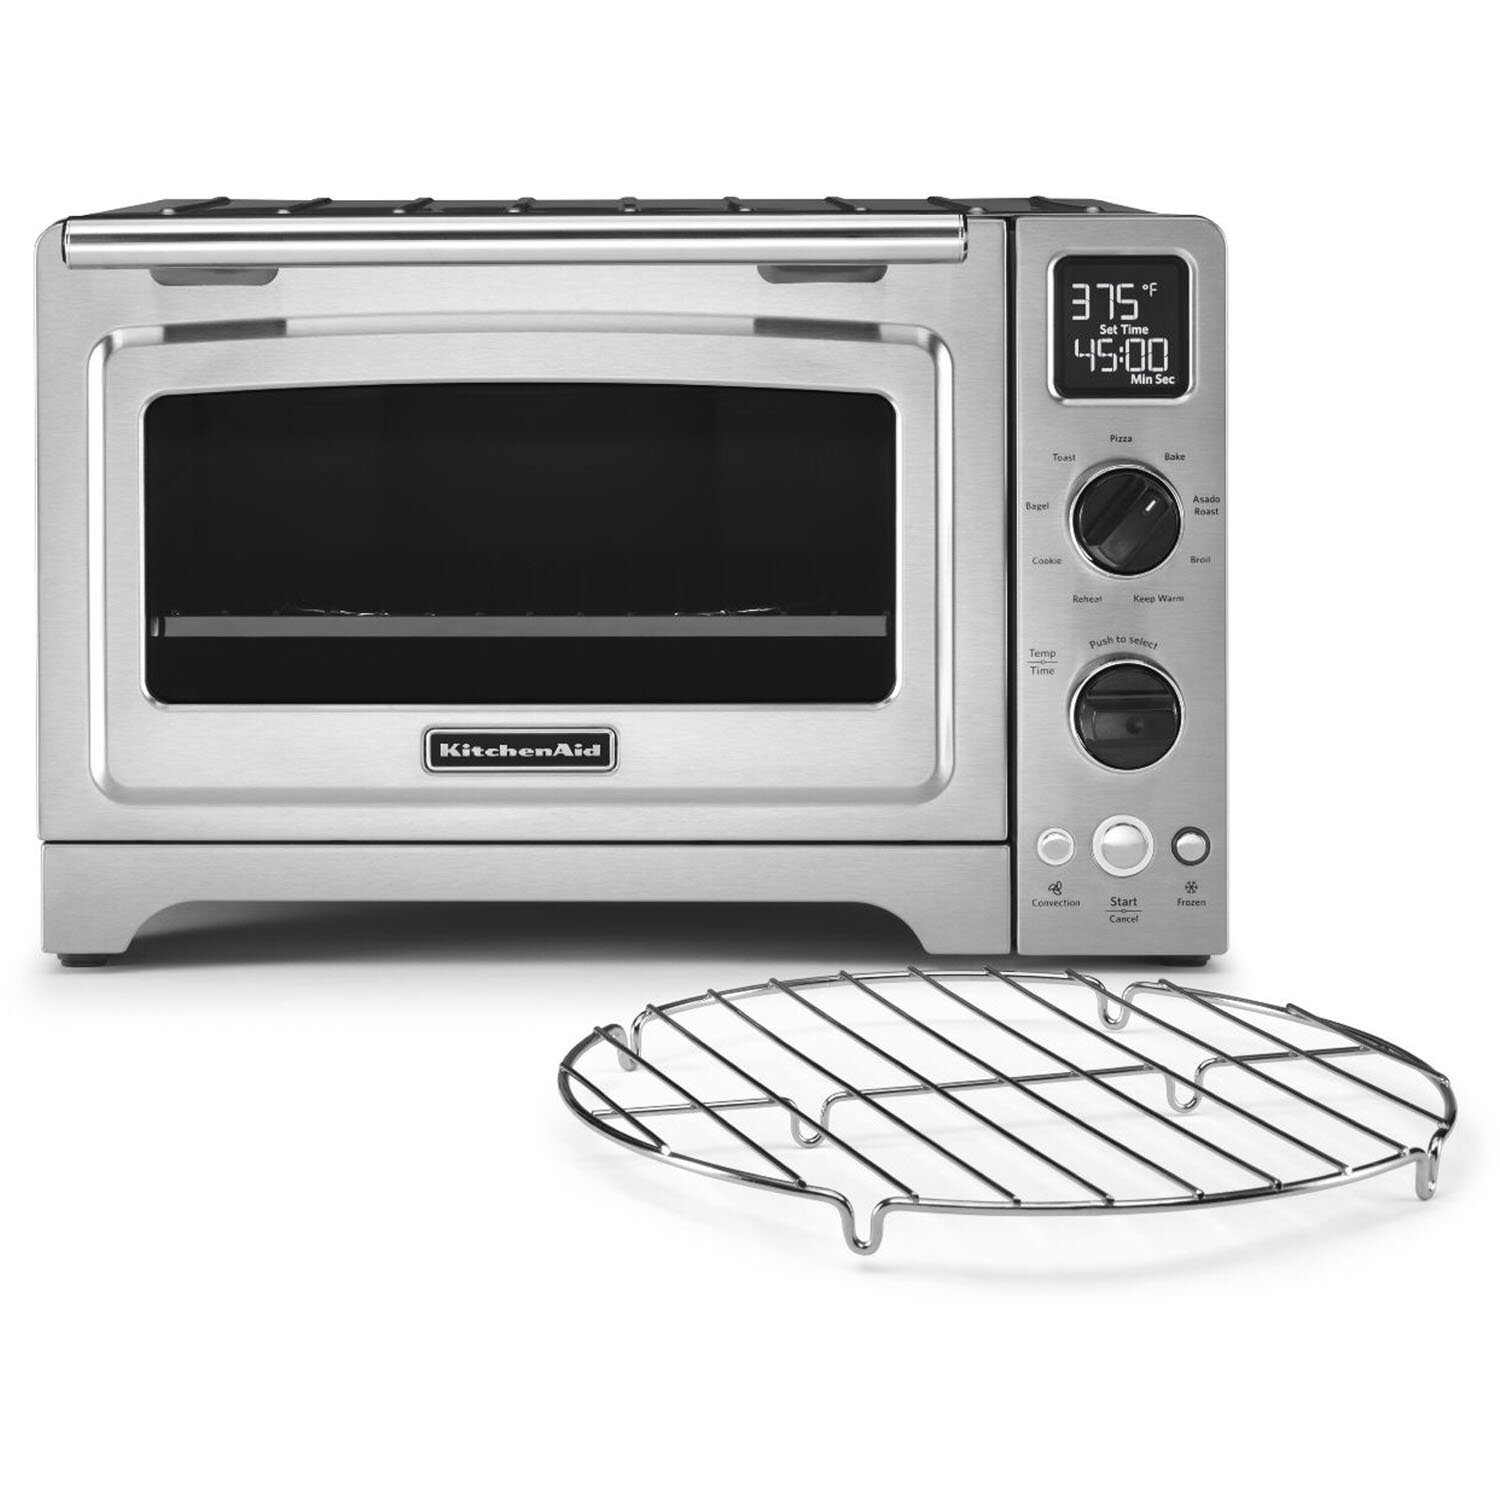 Convection Countertop Oven Stainless Steel : ... Foot Stainless Steel Convection Countertop Oven & Reviews Wayfair